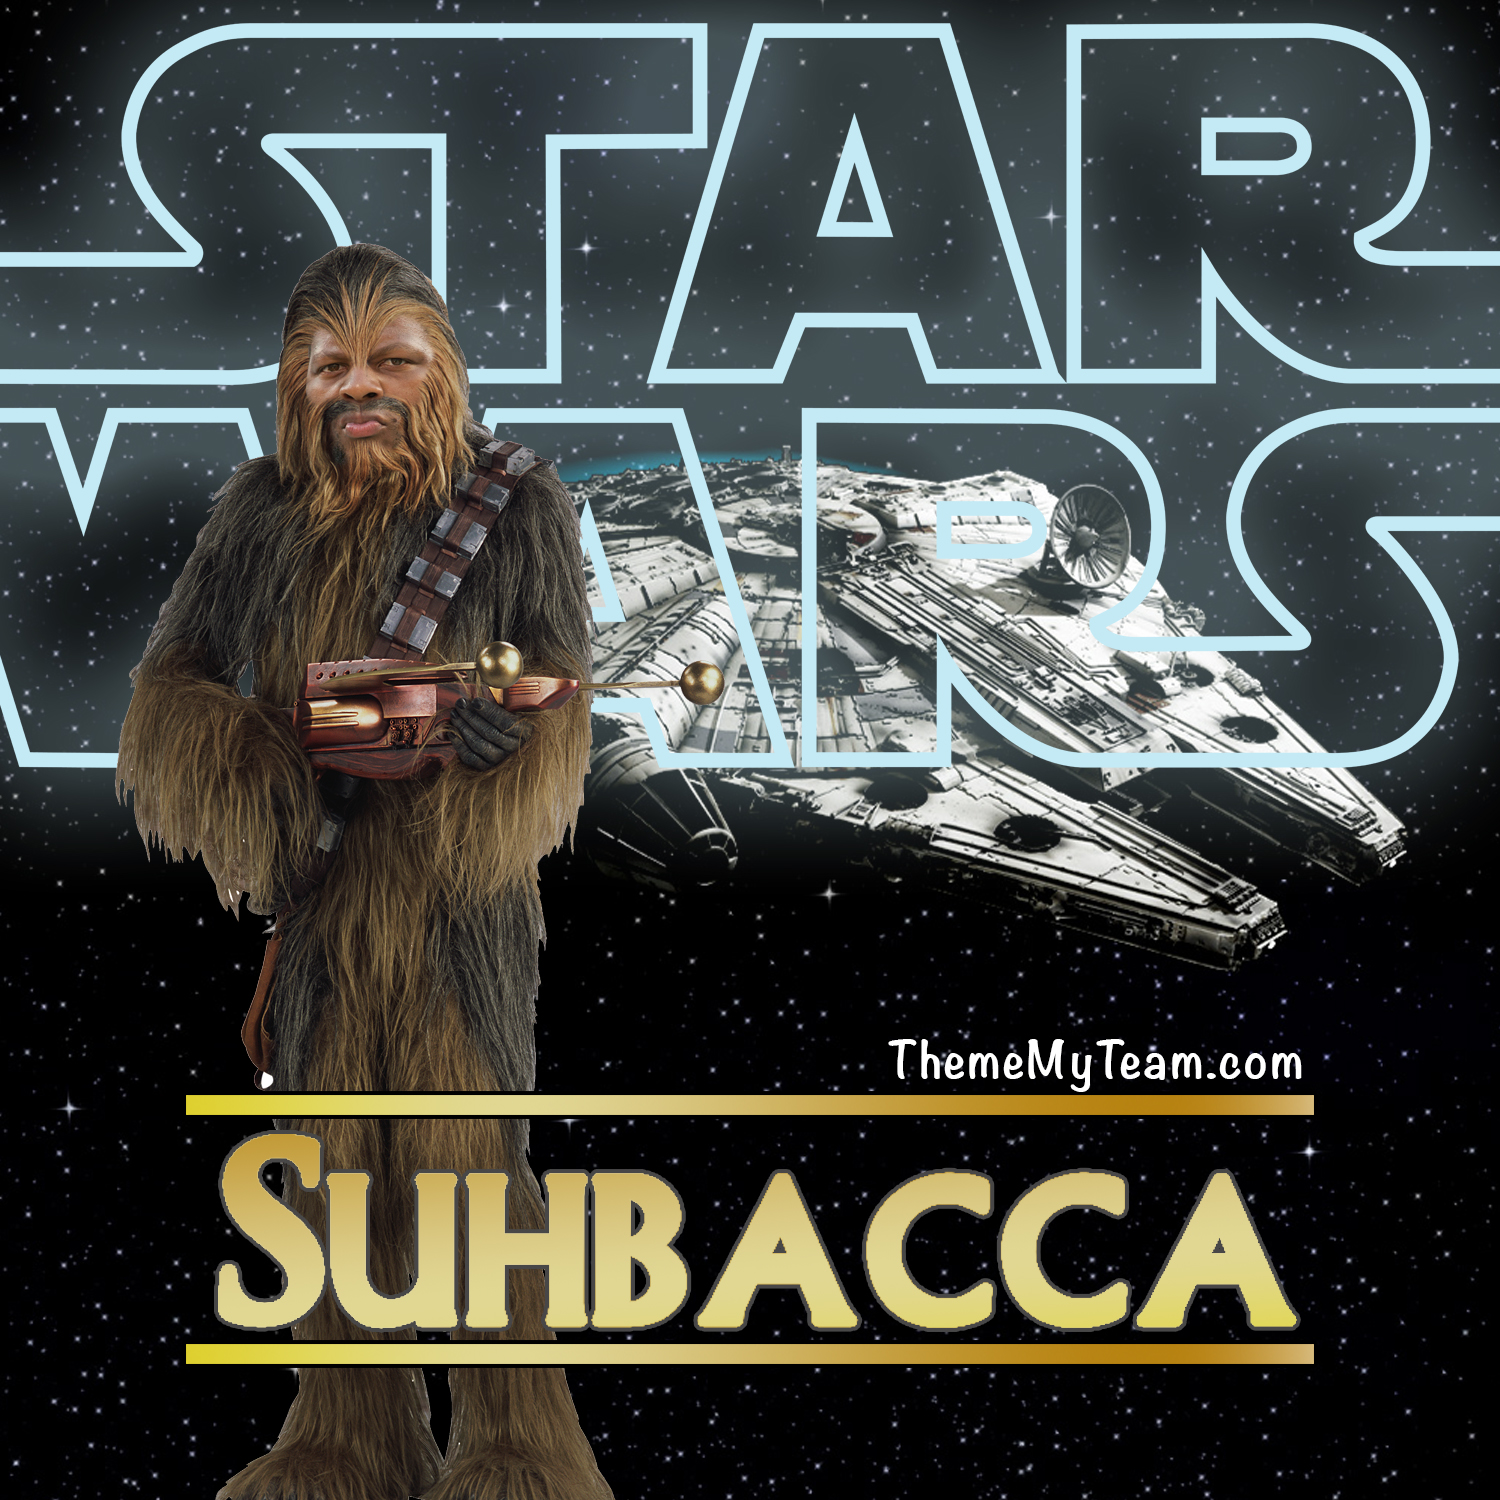 Suhbacca_TMT-1